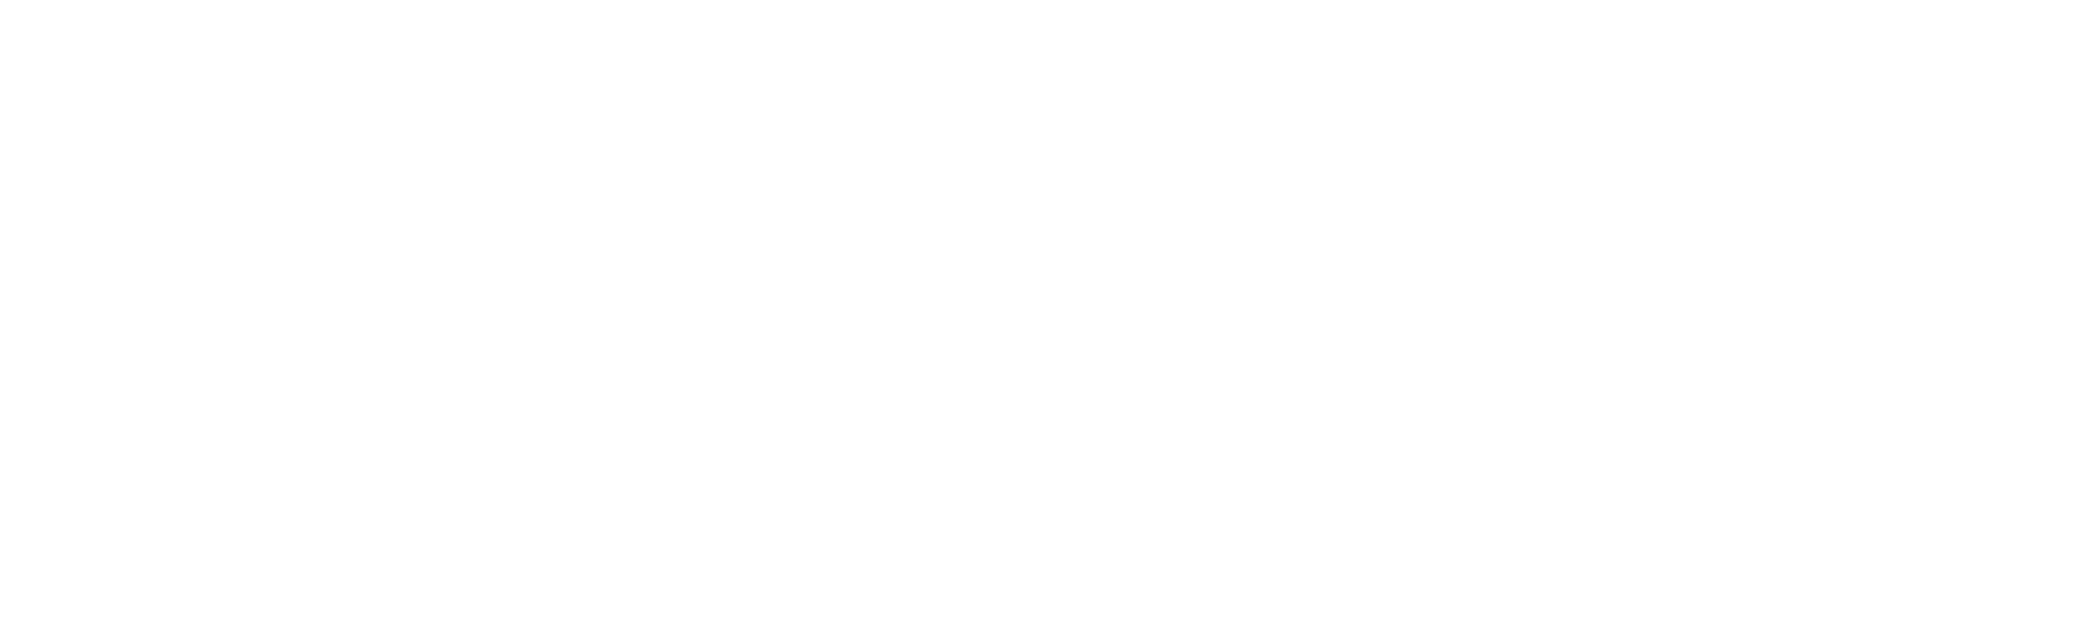 Accredited Language Services